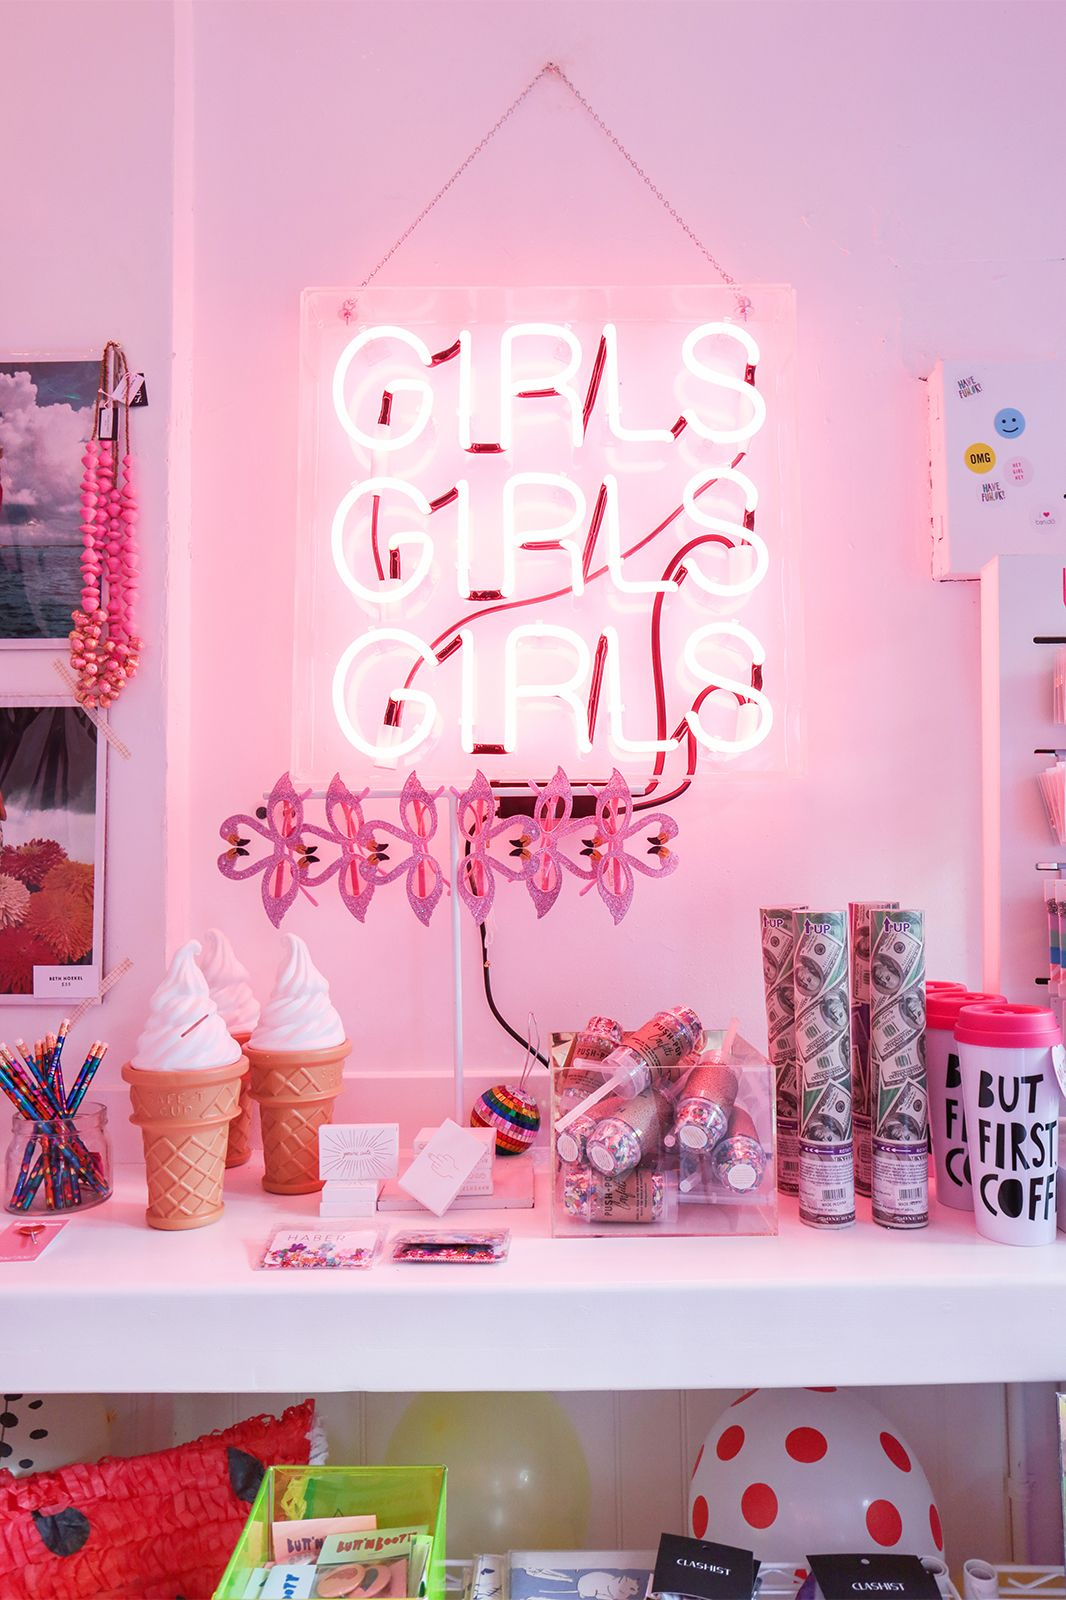 Girly pink neon sign